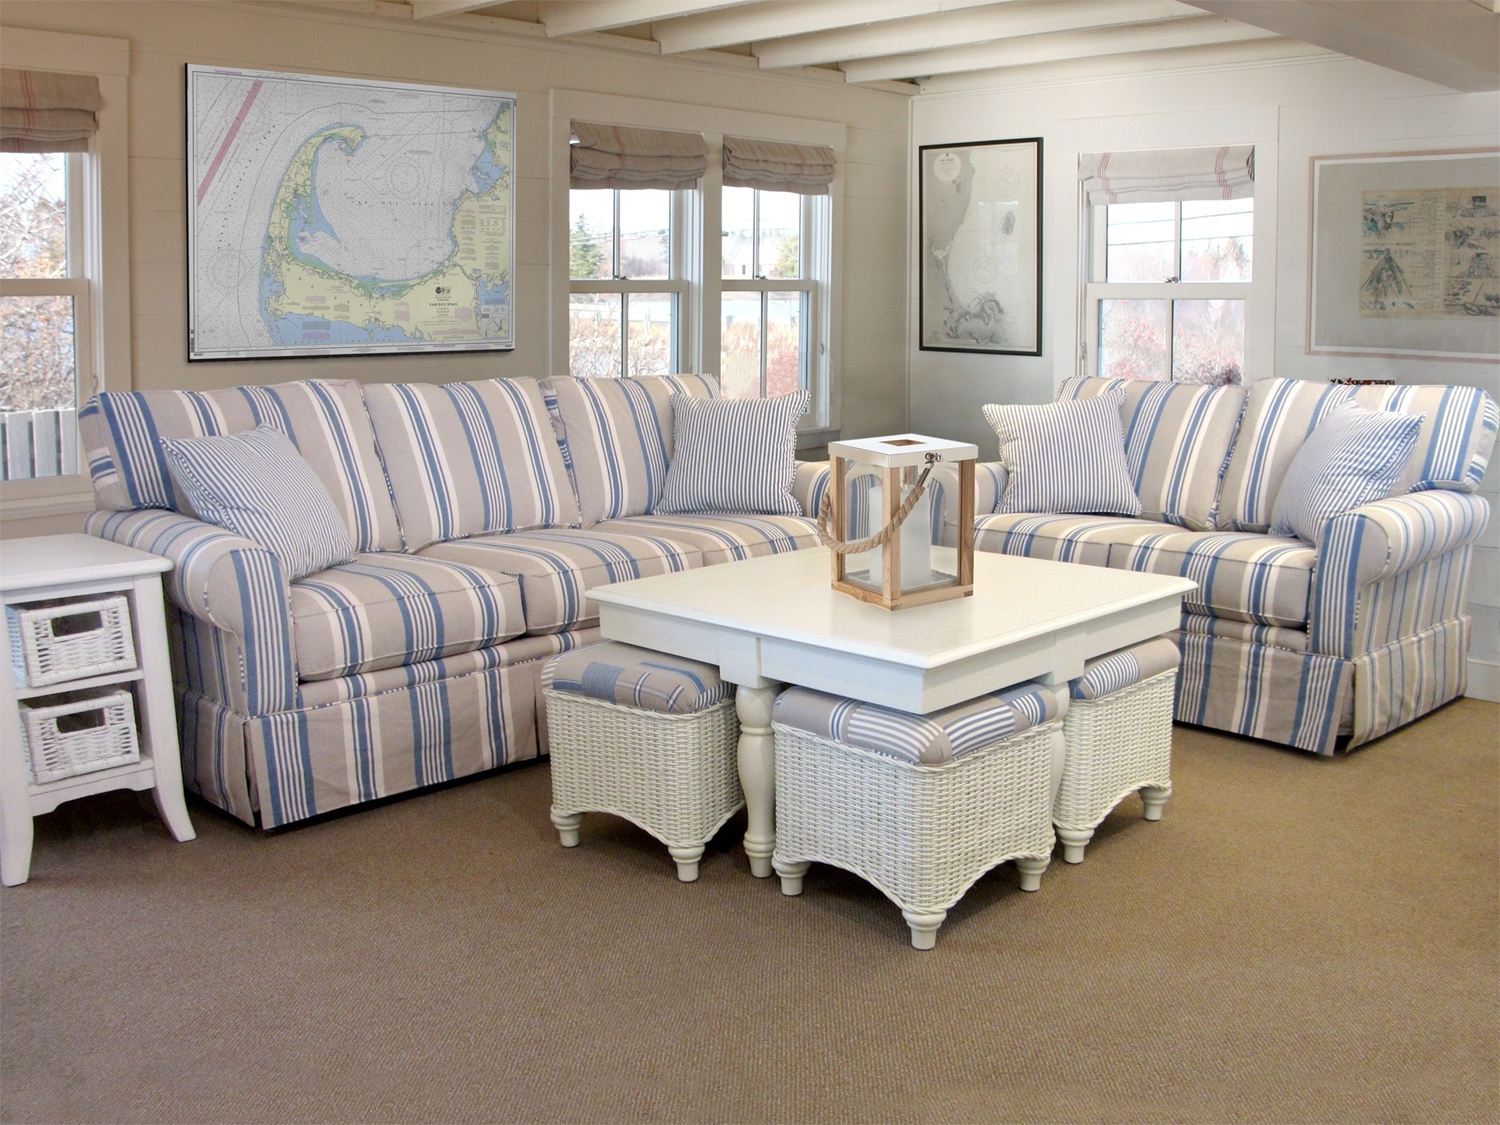 Striped Sofas And Chairs Throughout Trendy Awning Stripe Sofa (View 3 of 15)